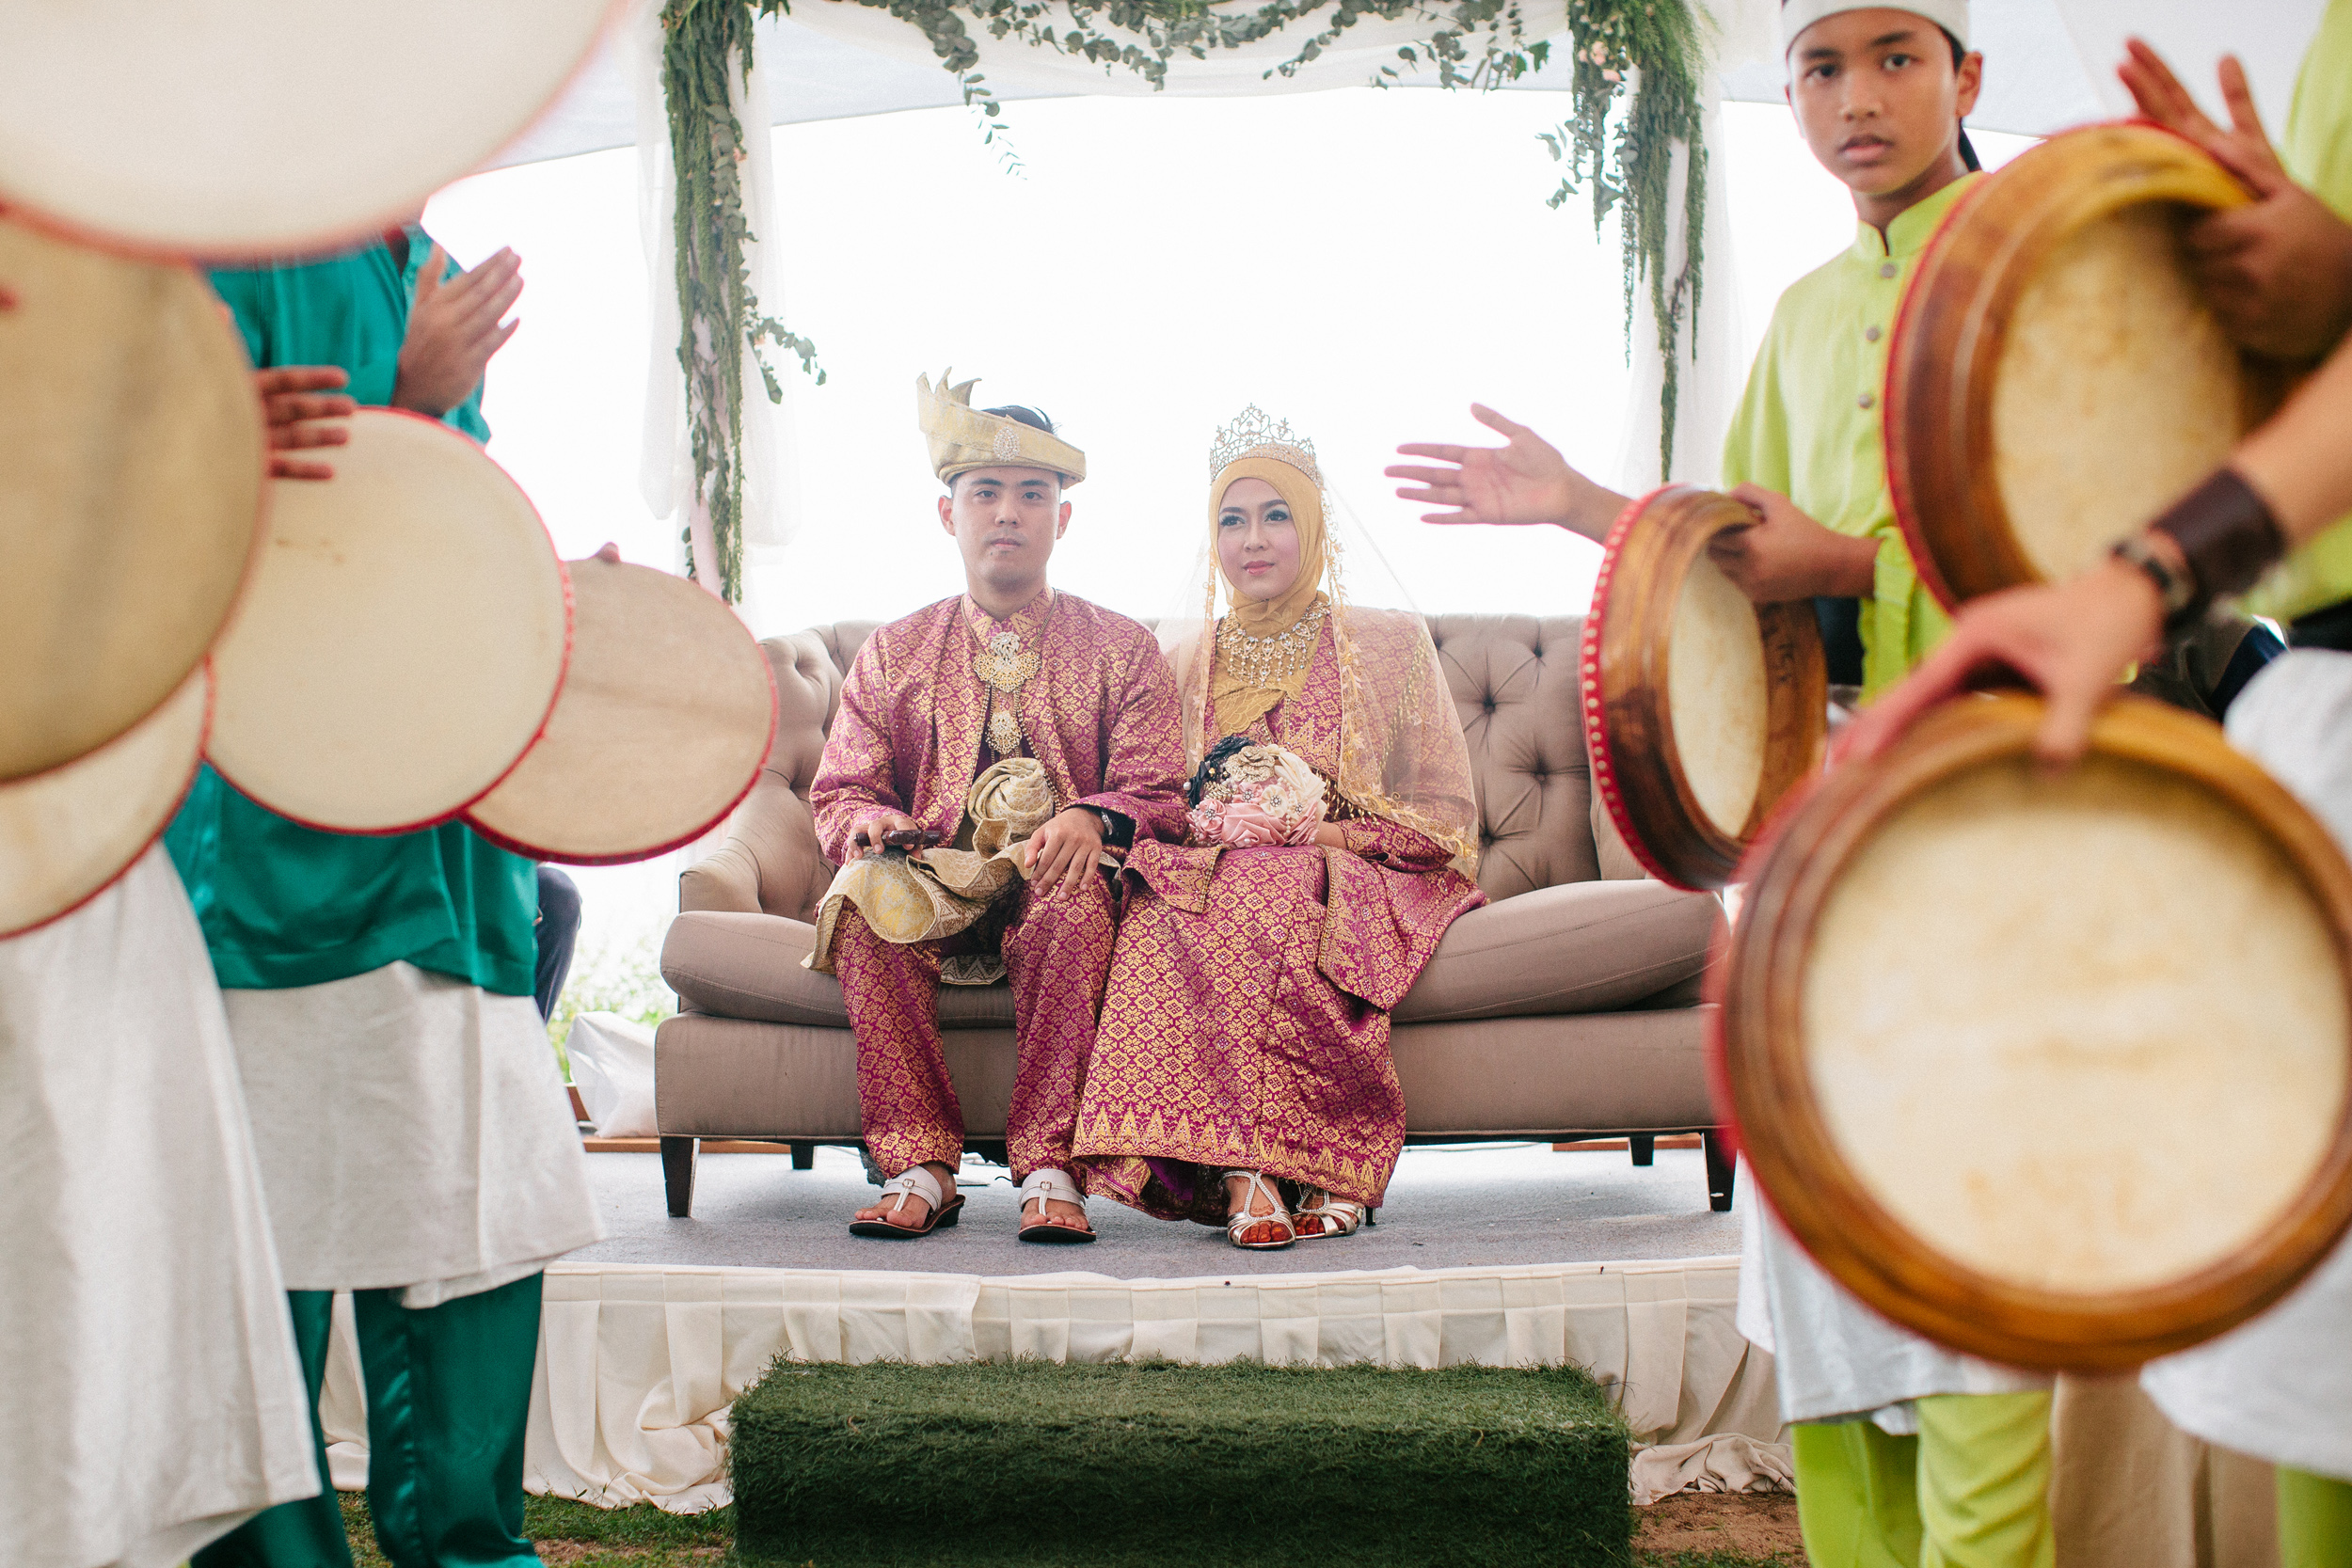 singapore-wedding-photographer-wemadethese-aisyah-helmi-45.jpg